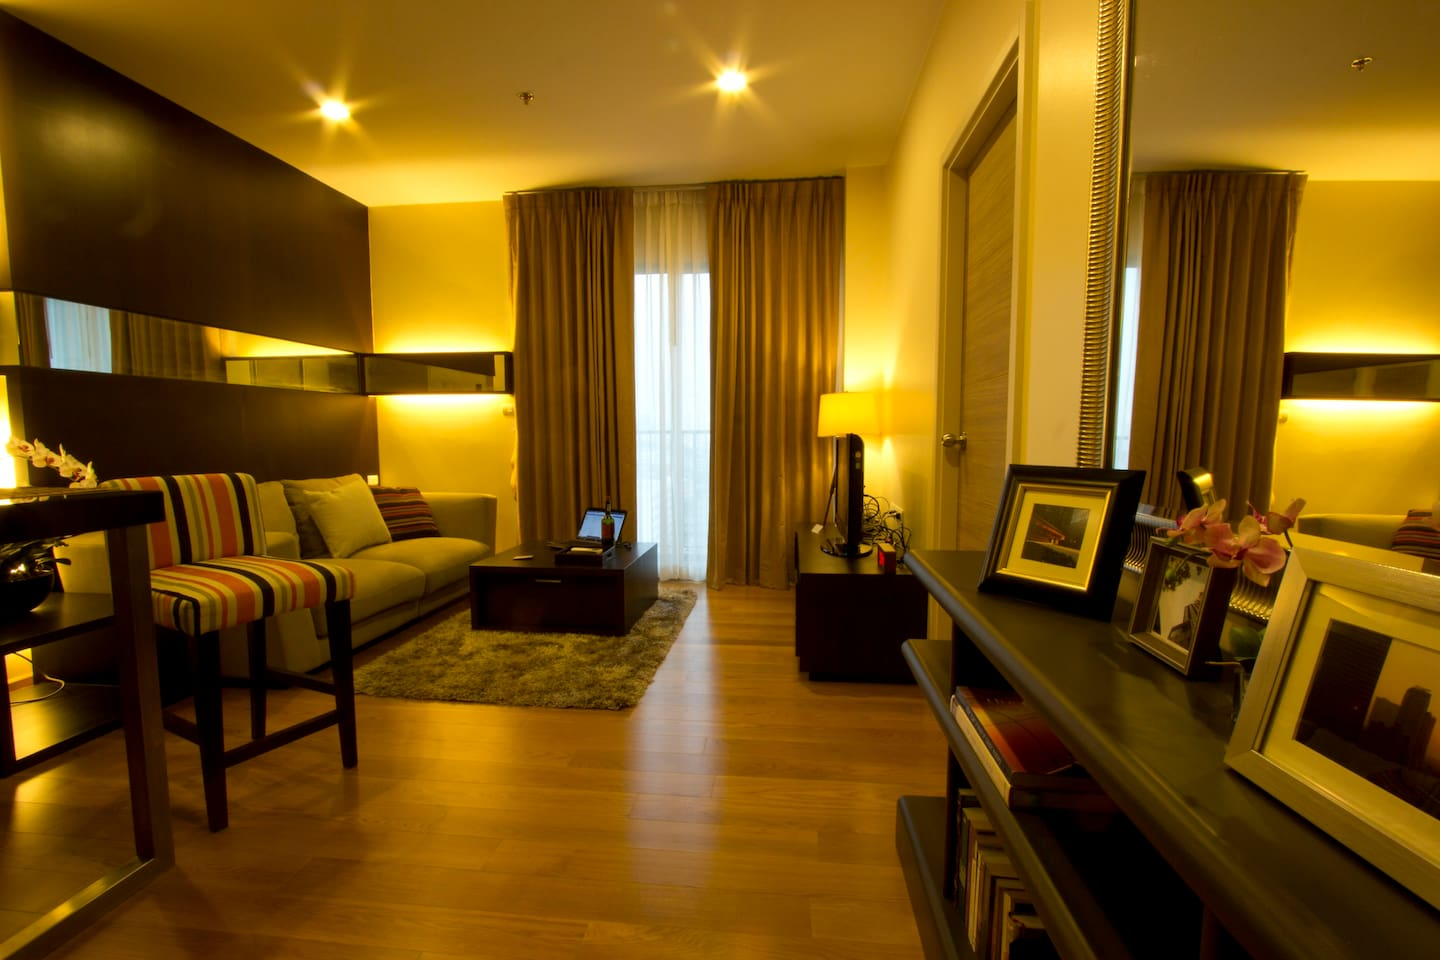 Contemporary modern living space, wood floor, fluffy carpet, large couch, warm atmosphere & lighting-very homey